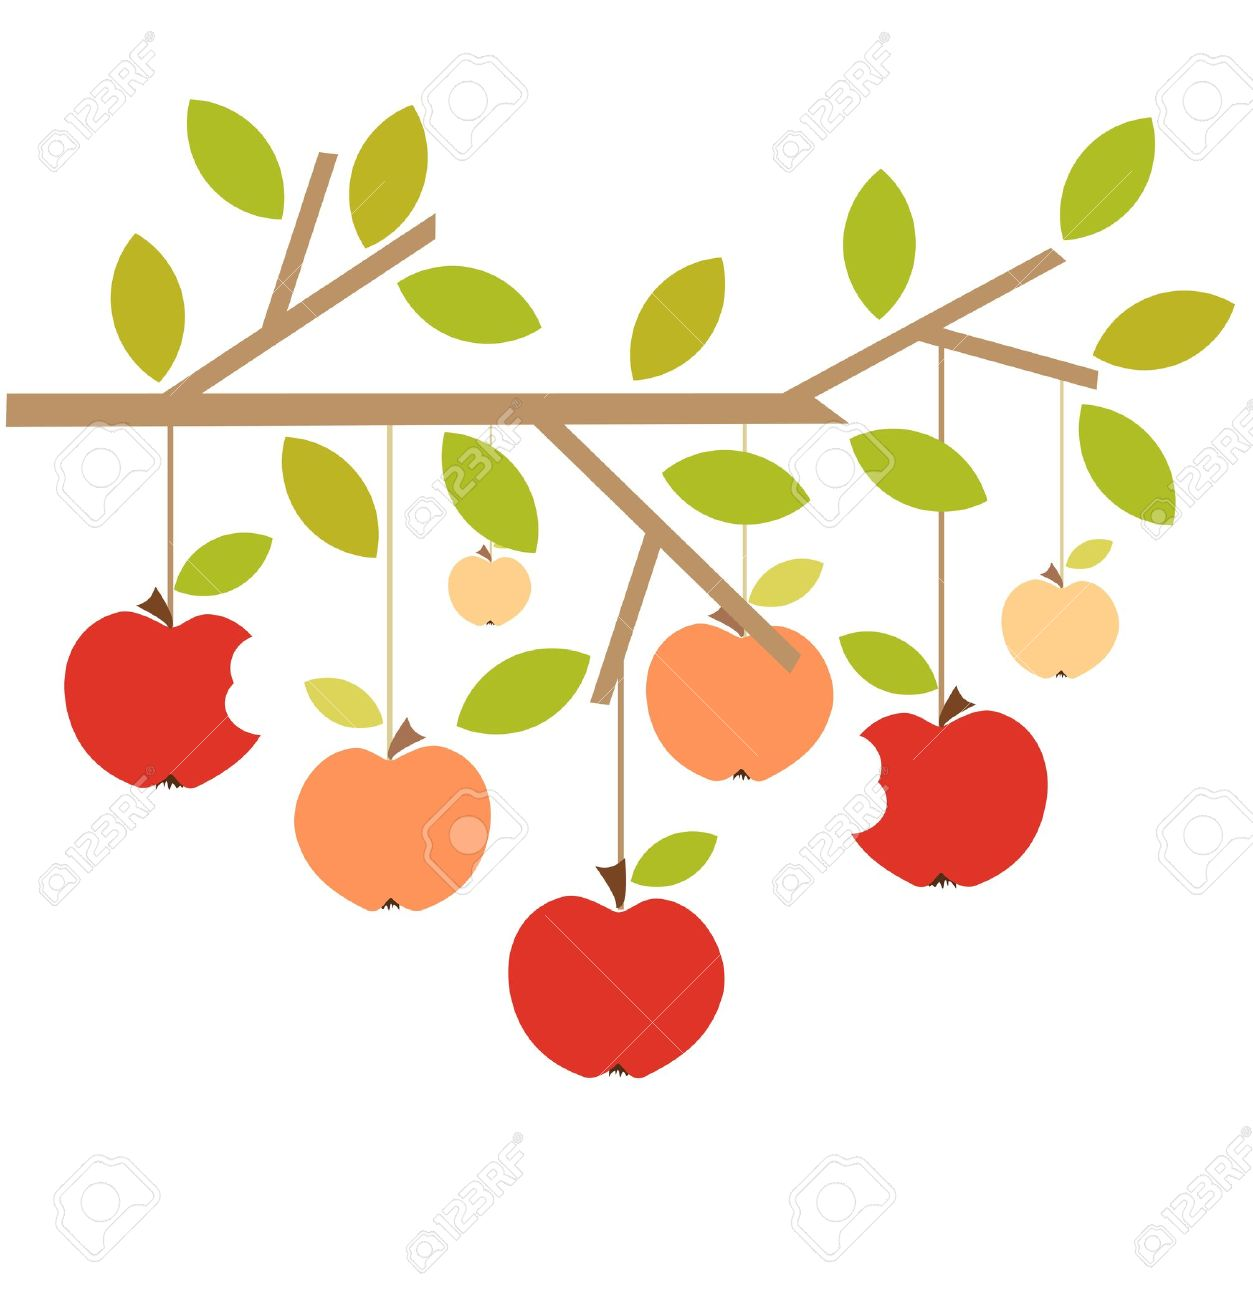 Apple Tree Stock Illustrations Cliparts And Royalty Free Apple - Apple tree apples on tree branch autumn vector illustration